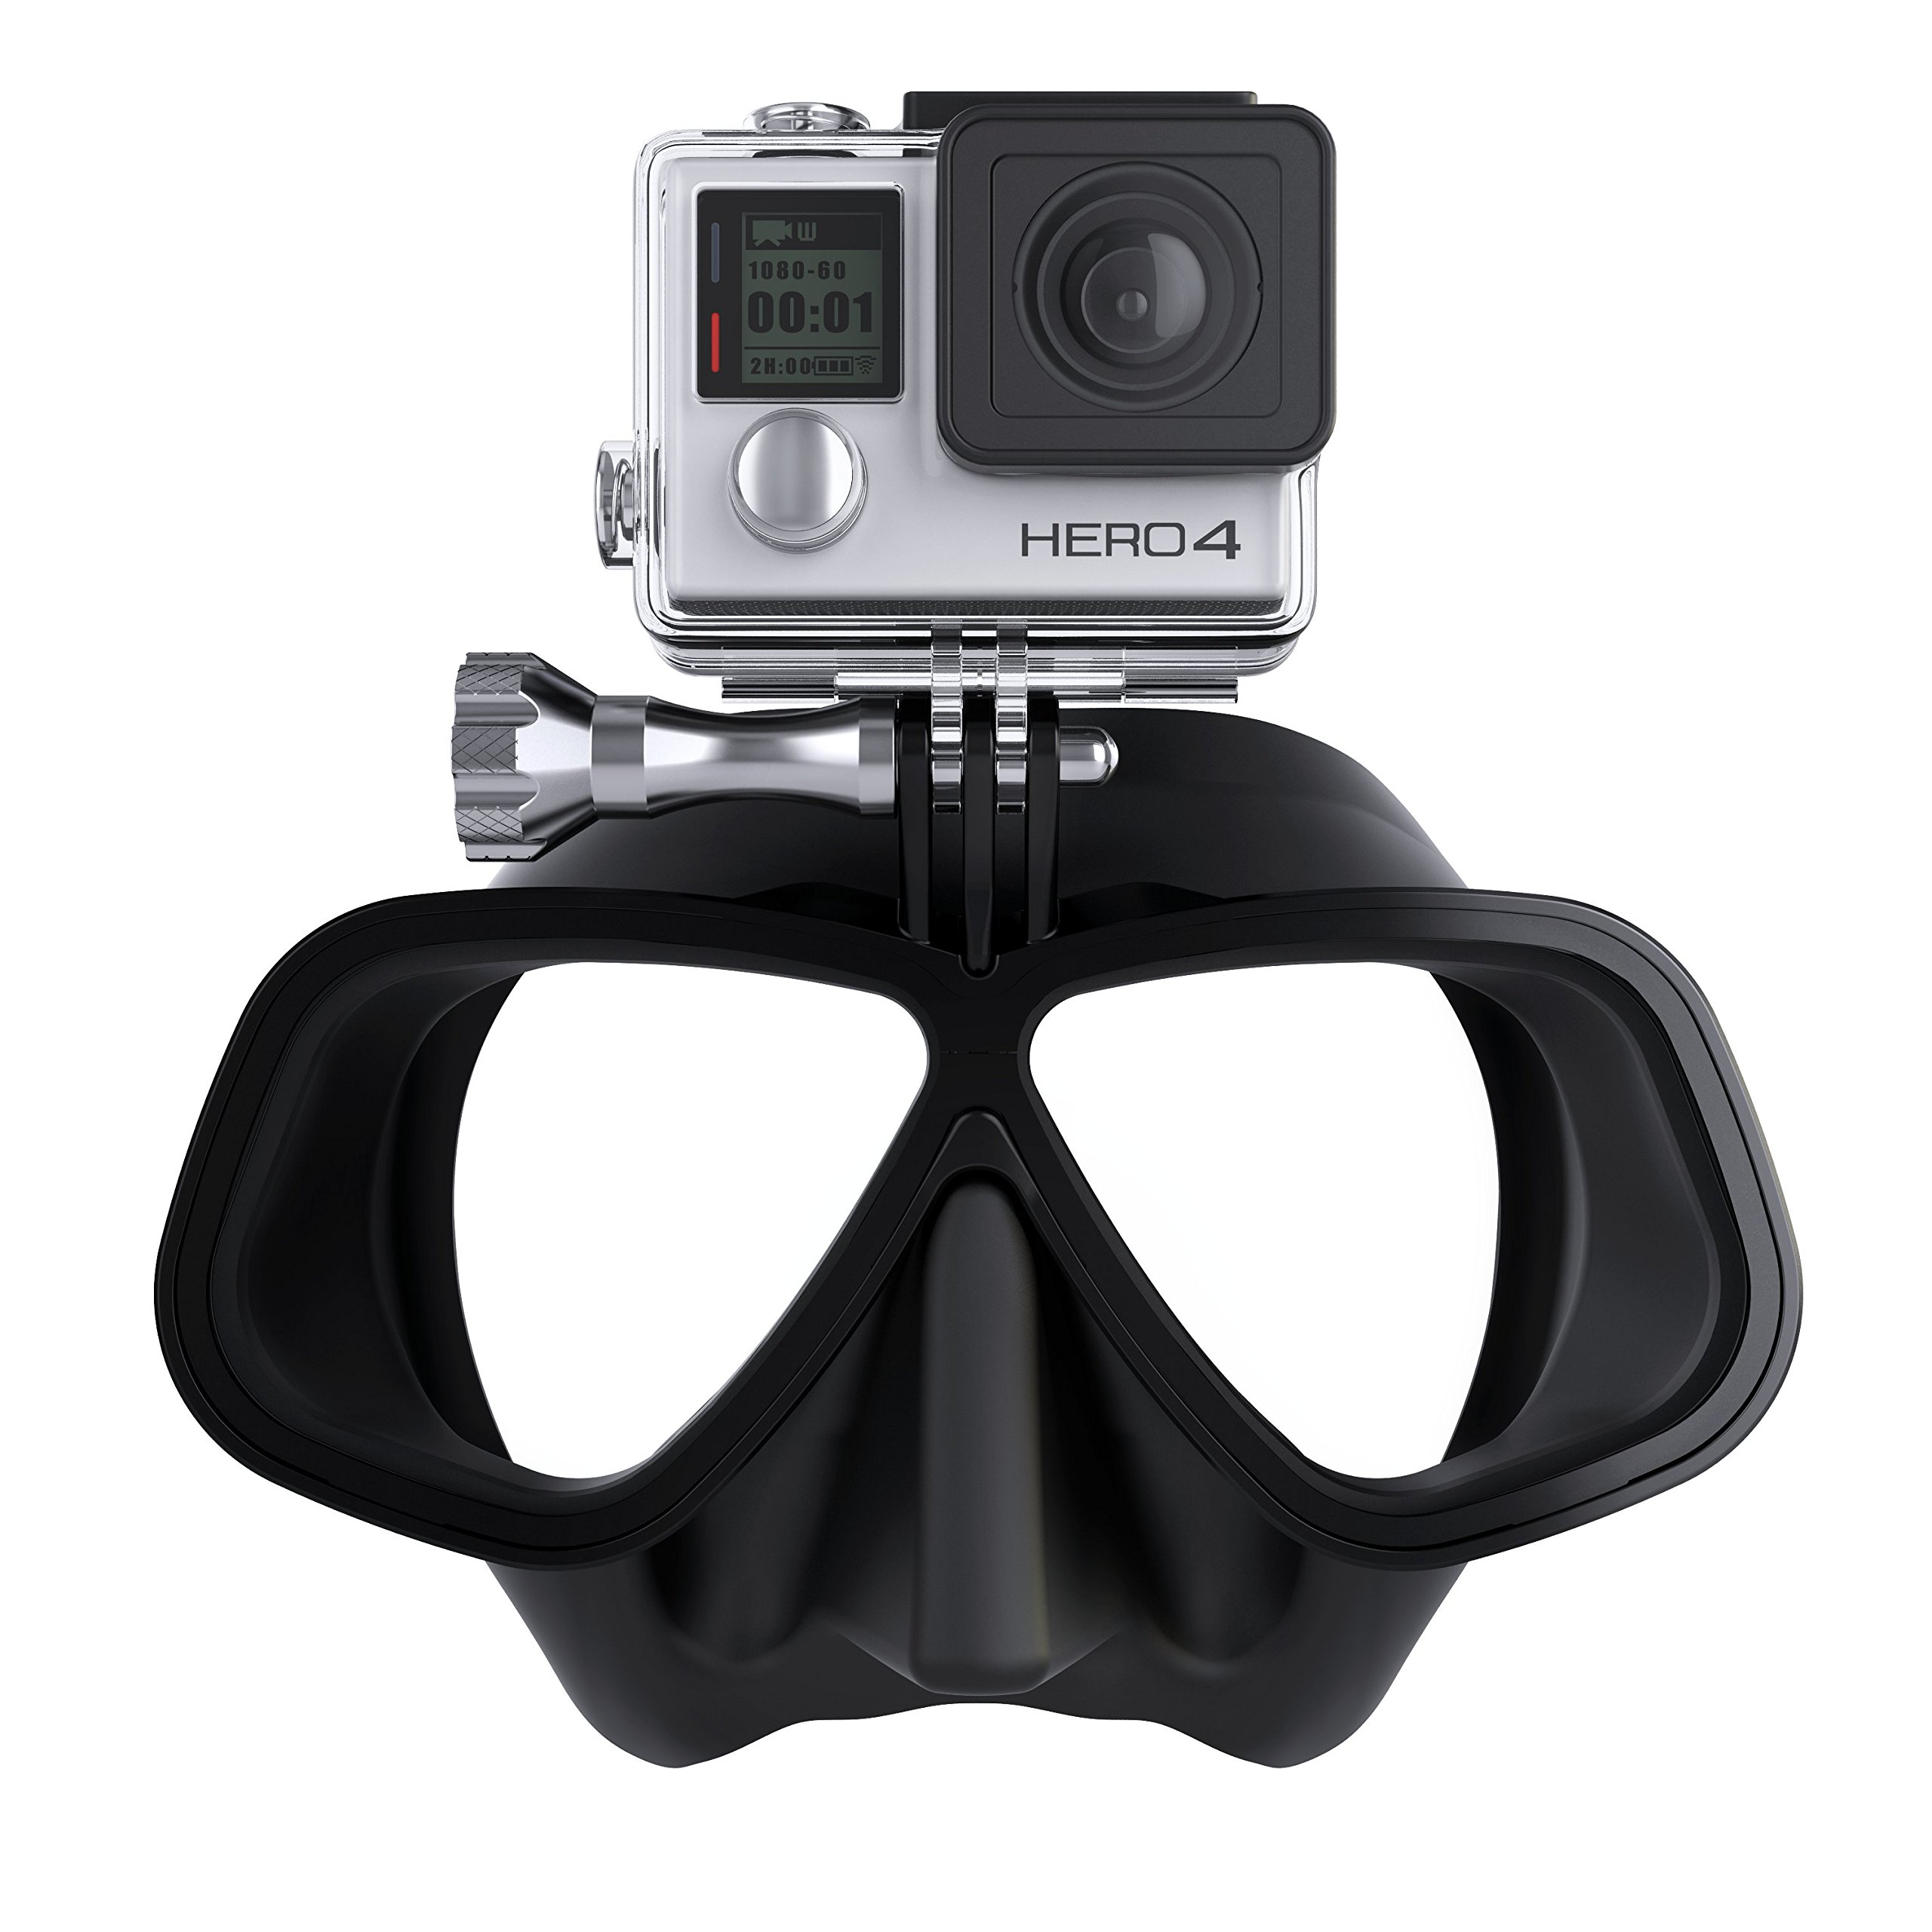 OCTOMASK - Compatible with Gopro - Dive Mask for Scuba and Snorkeling - Black by OCTOMASK